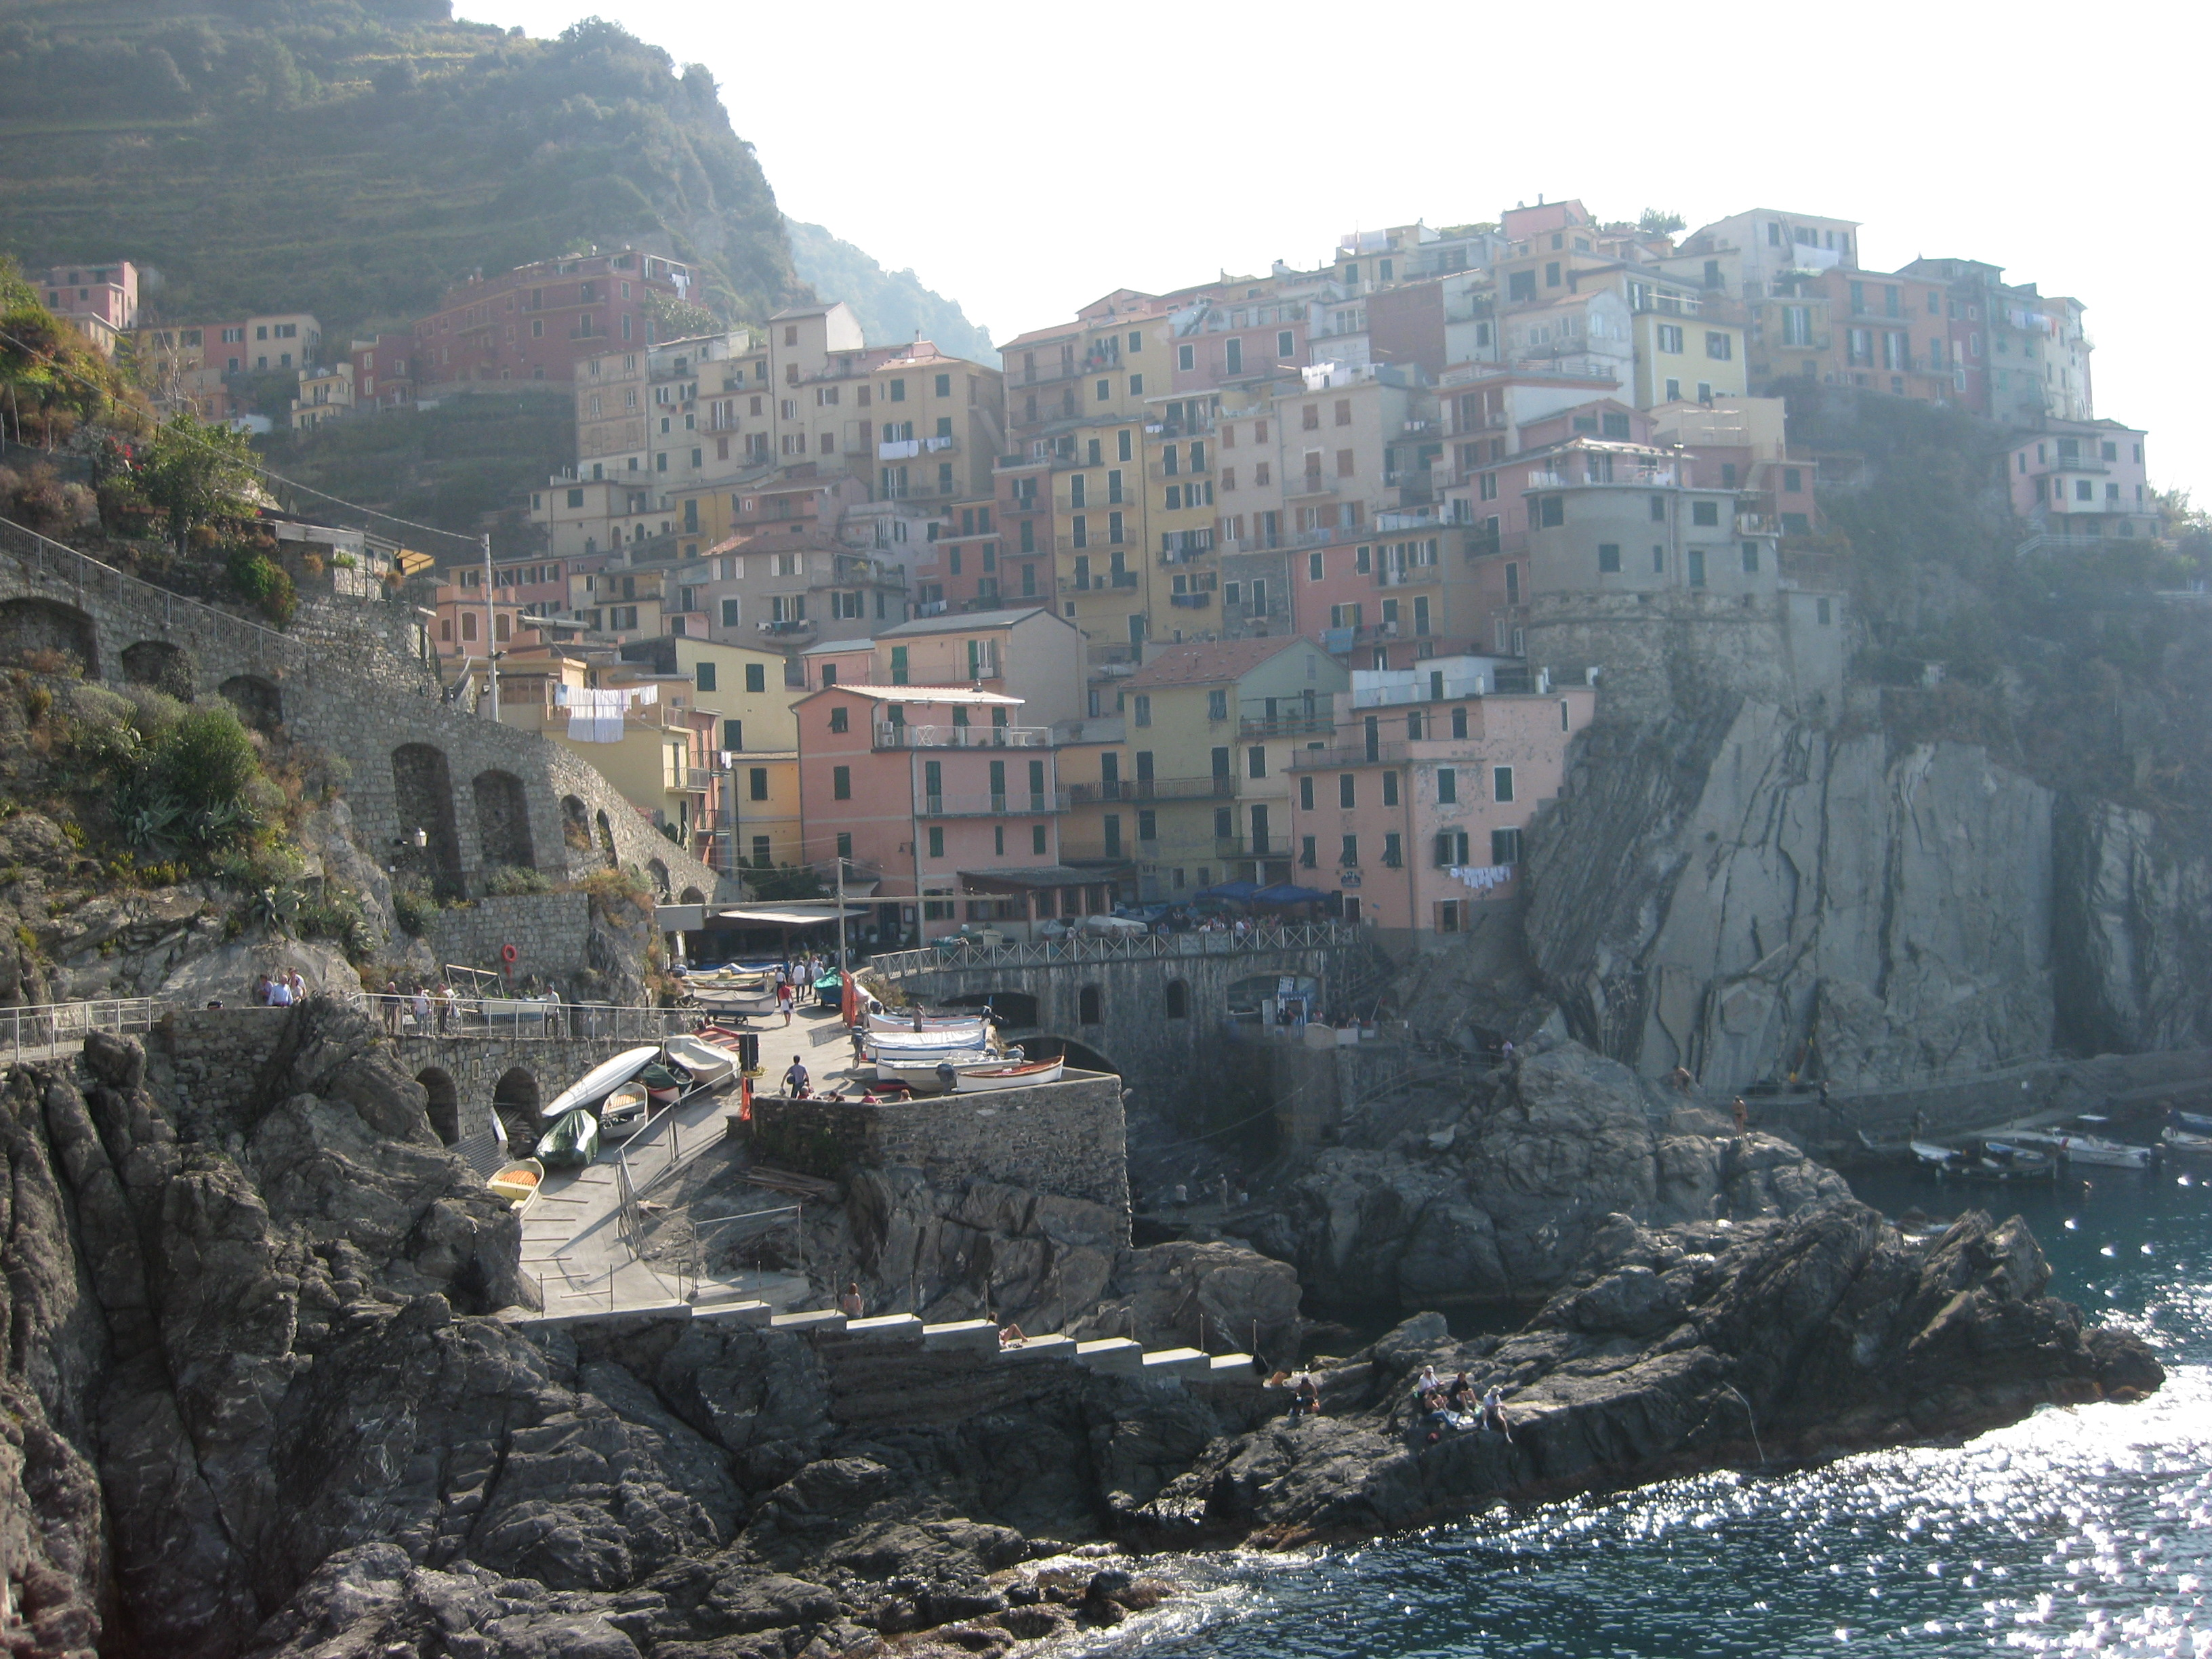 Italy Infogasm: A Guide to the 5 Towns of Cinque Terre